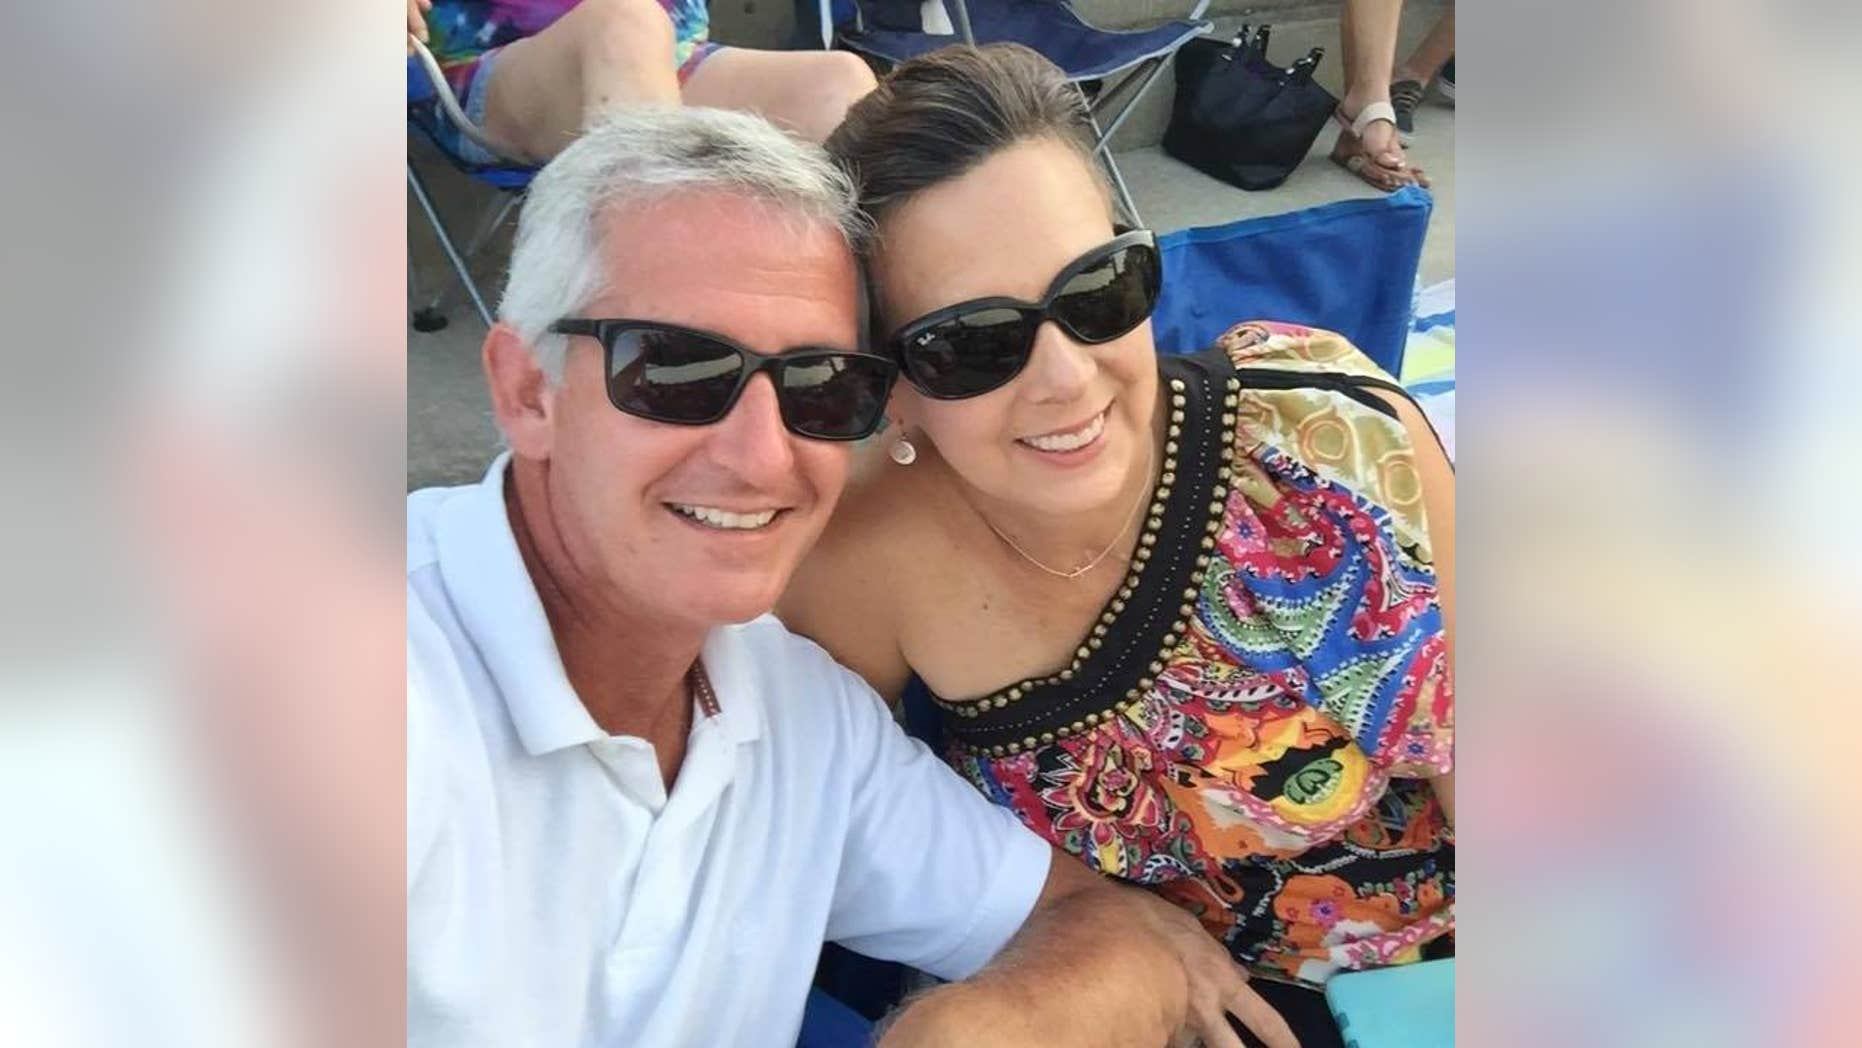 Angela Sartin-Hartung, who lost her memory after being hit by an NYPD vehicle in 2013, will re-marry her husband after falling in love with him again.